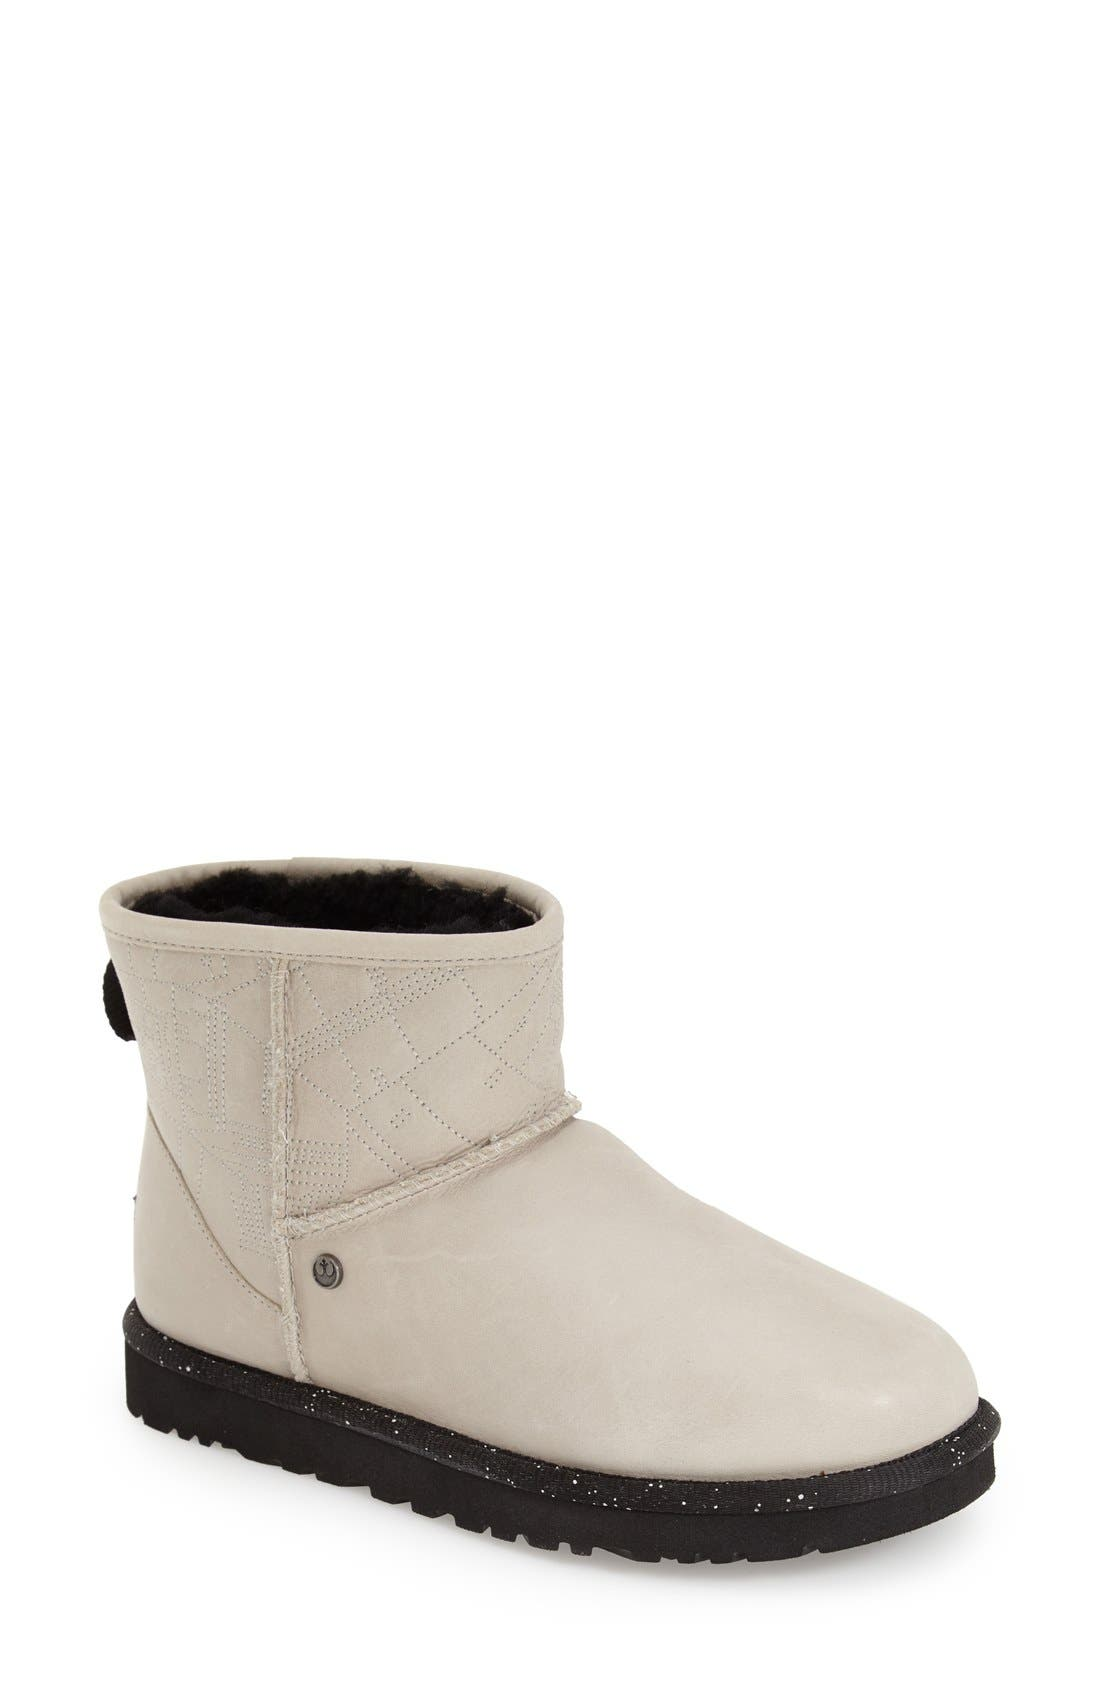 Main Image - UGG® 'Star Wars Millennium Falcon - Classic Mini' Water Resistant Short Boot (Women)